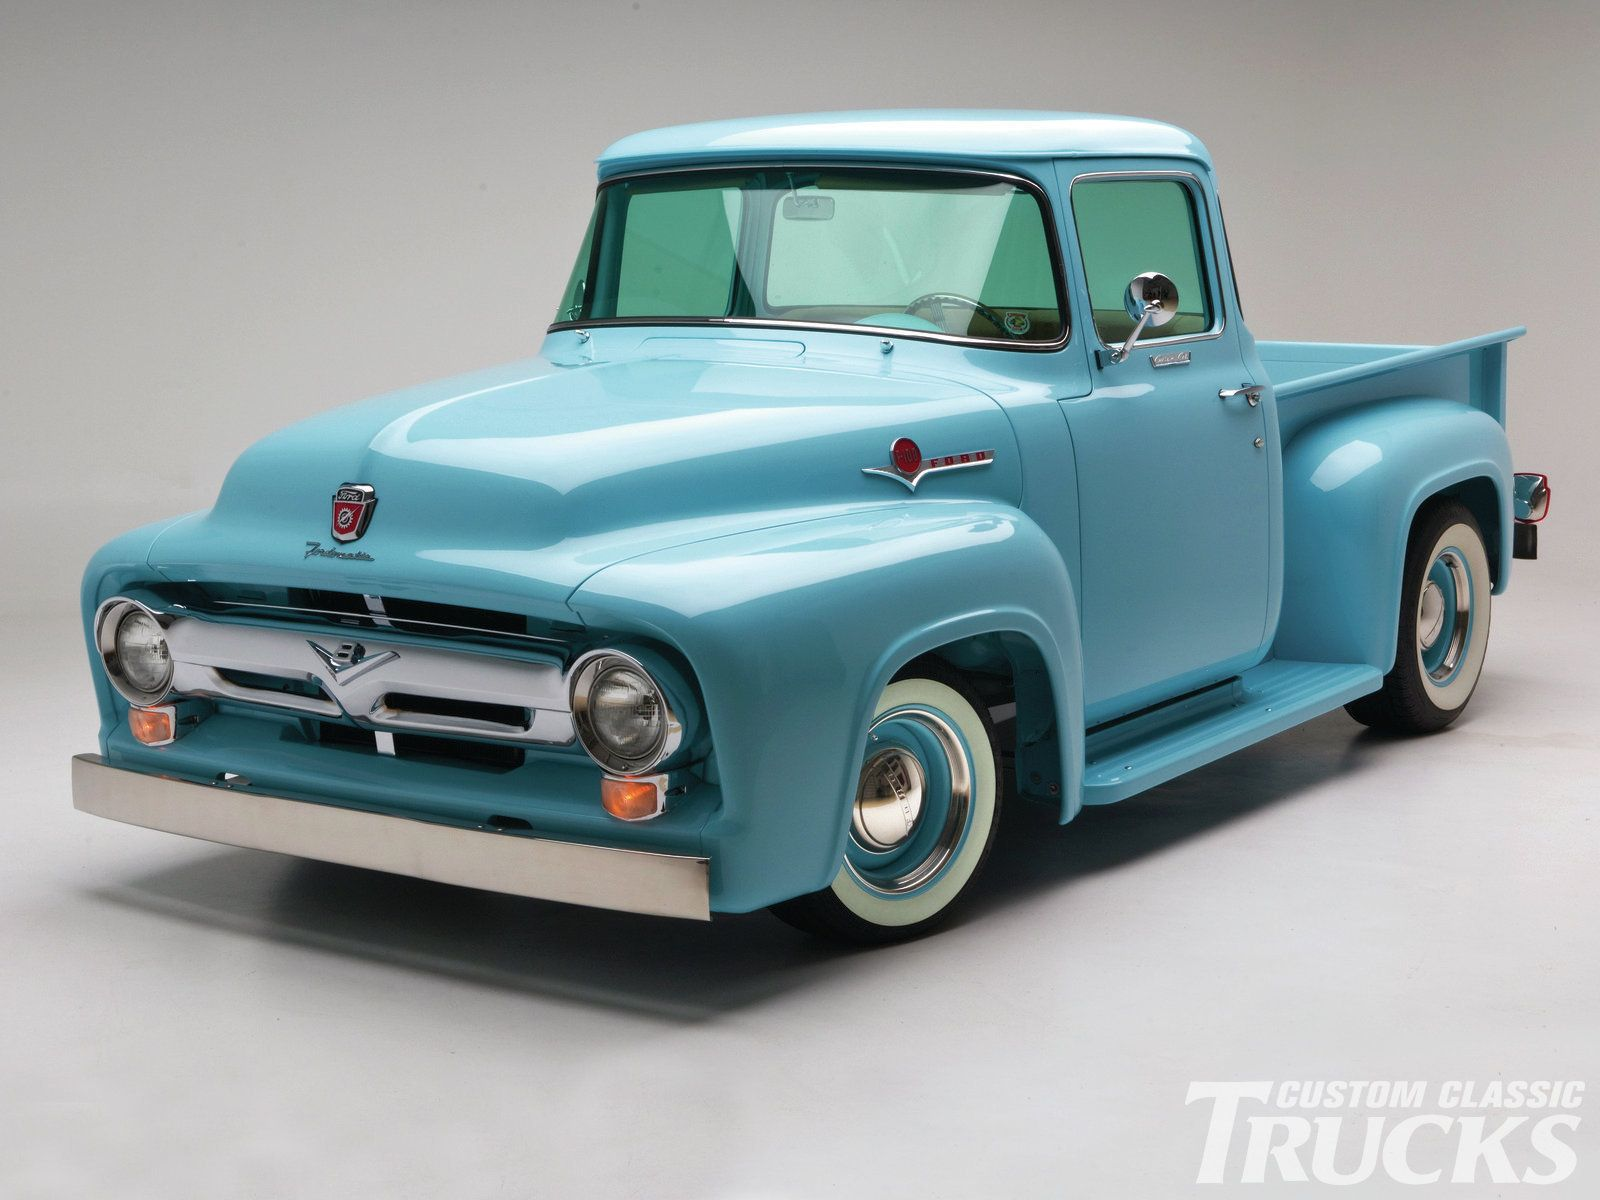 Visit our website for great deals on the classic 1956 ford pickup trucks on sale today at great prices we have the second generation ford trucks listed